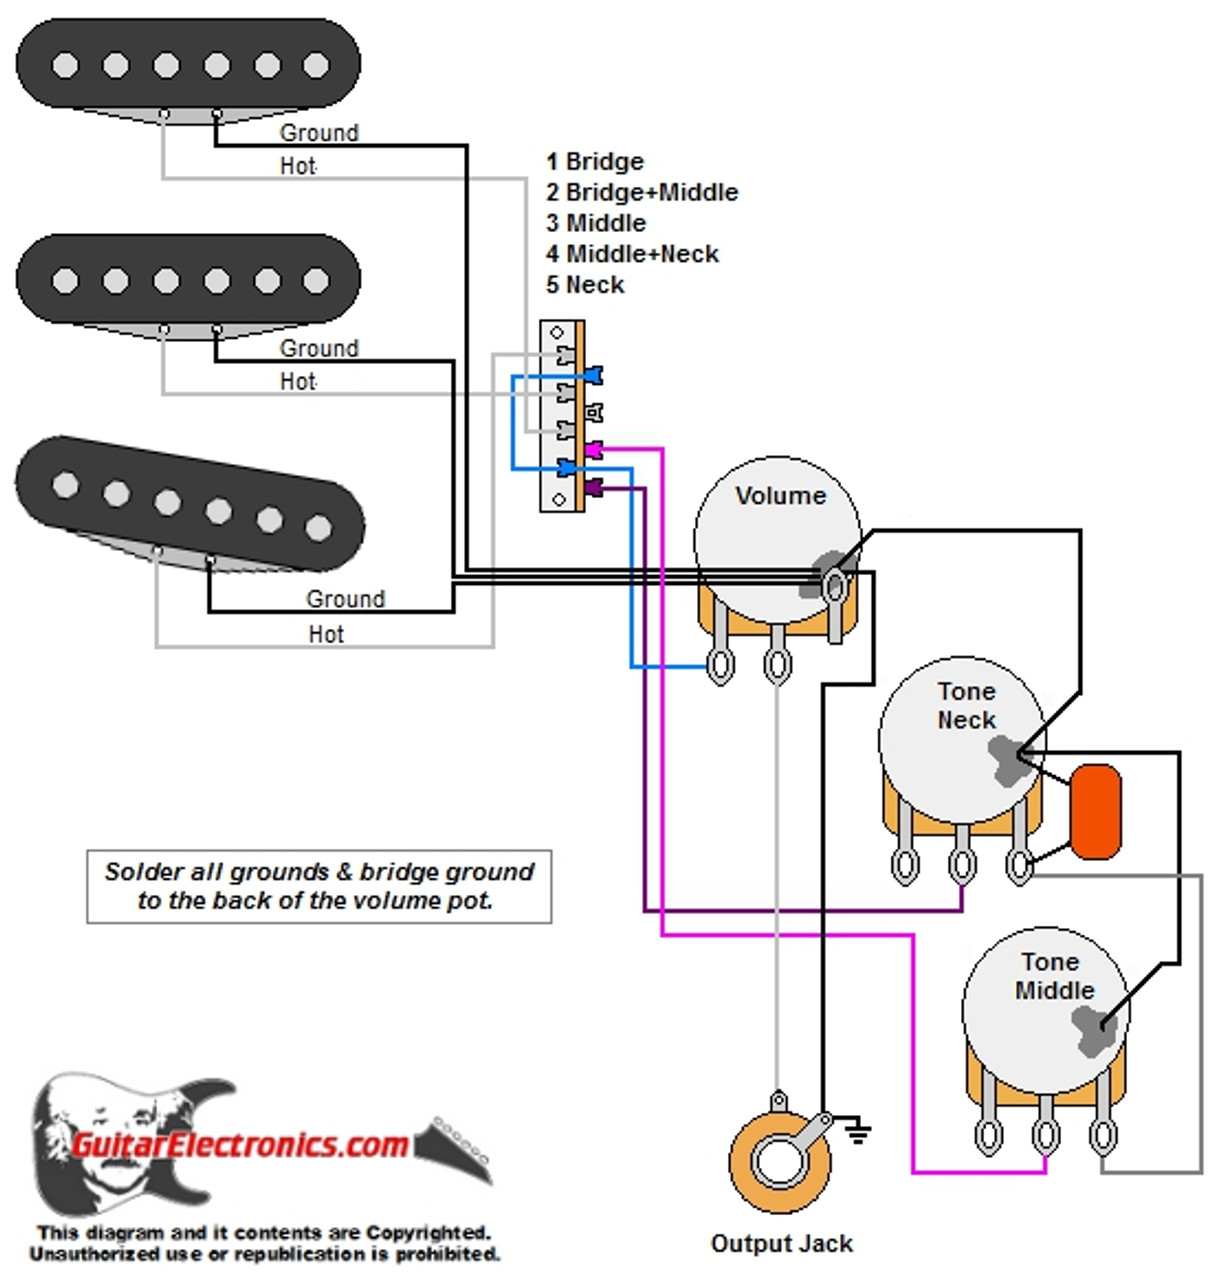 hight resolution of strat style guitar wiring diagramwdusss5l1201 80483 1481740458 jpg c u003d2